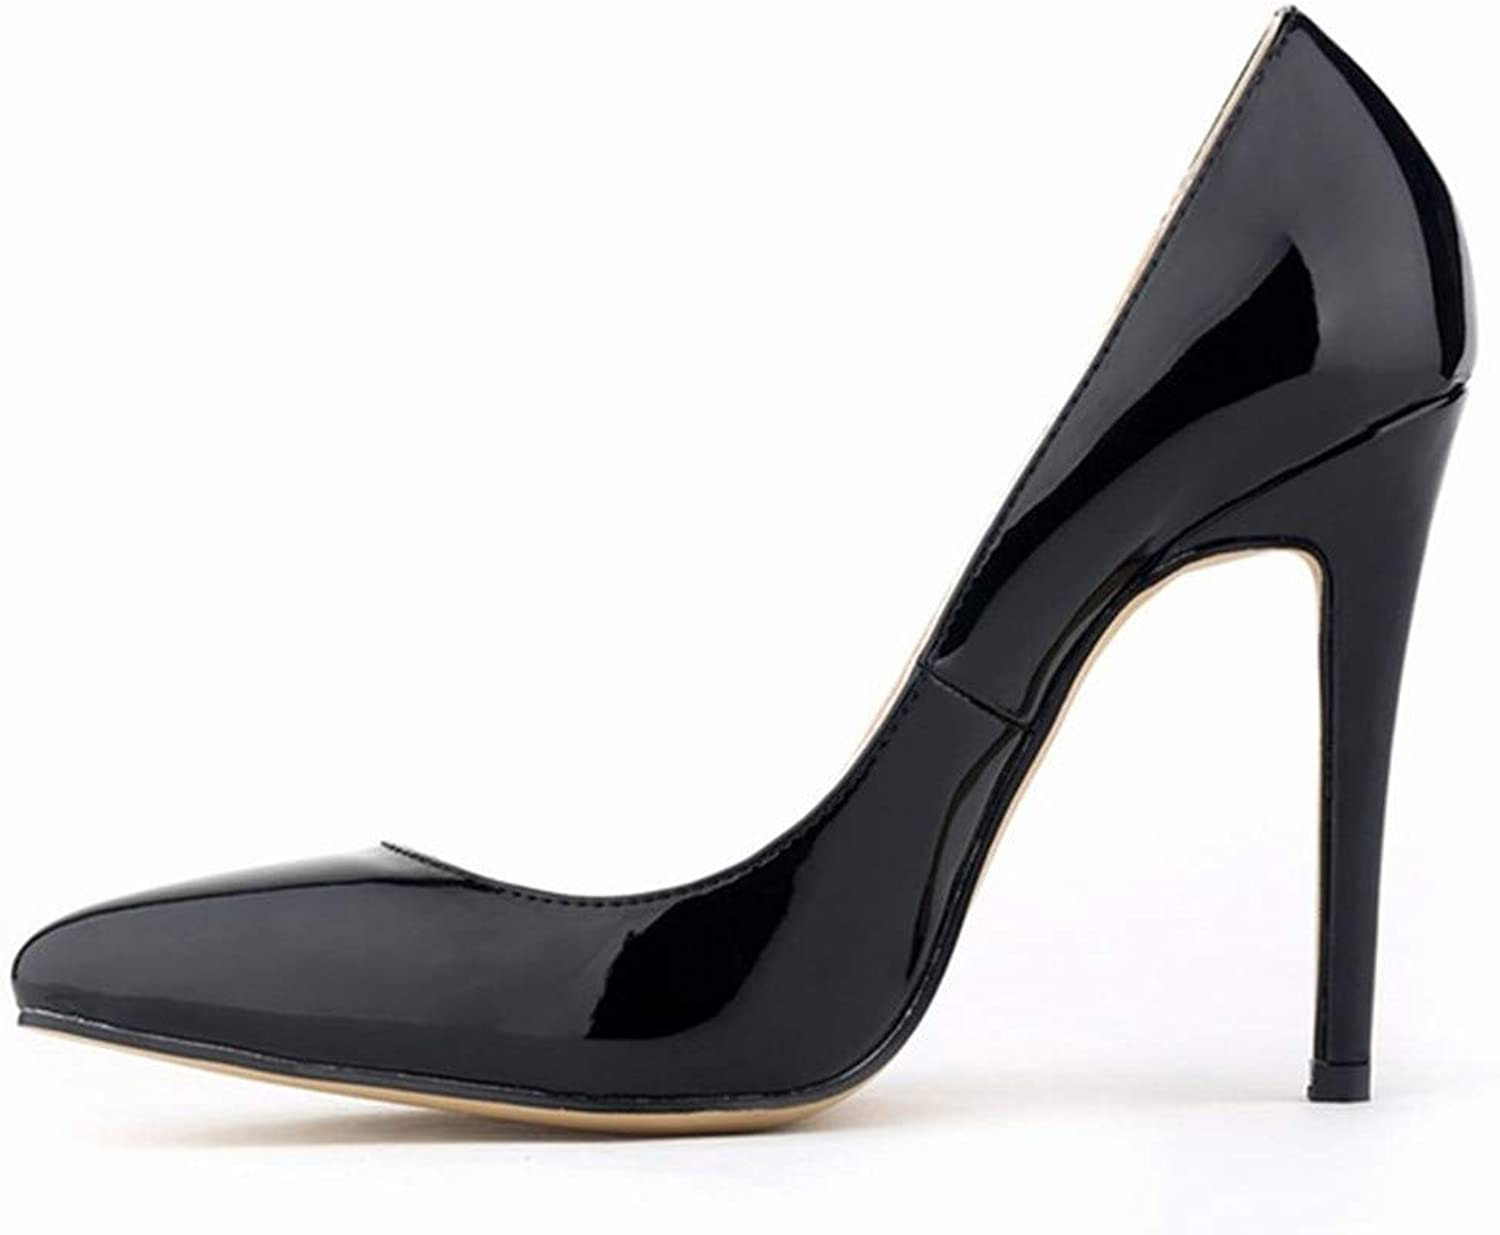 Julitia Pumps Sexy Pointed Toe High Heels Women Pumps shoes New Spring Brand